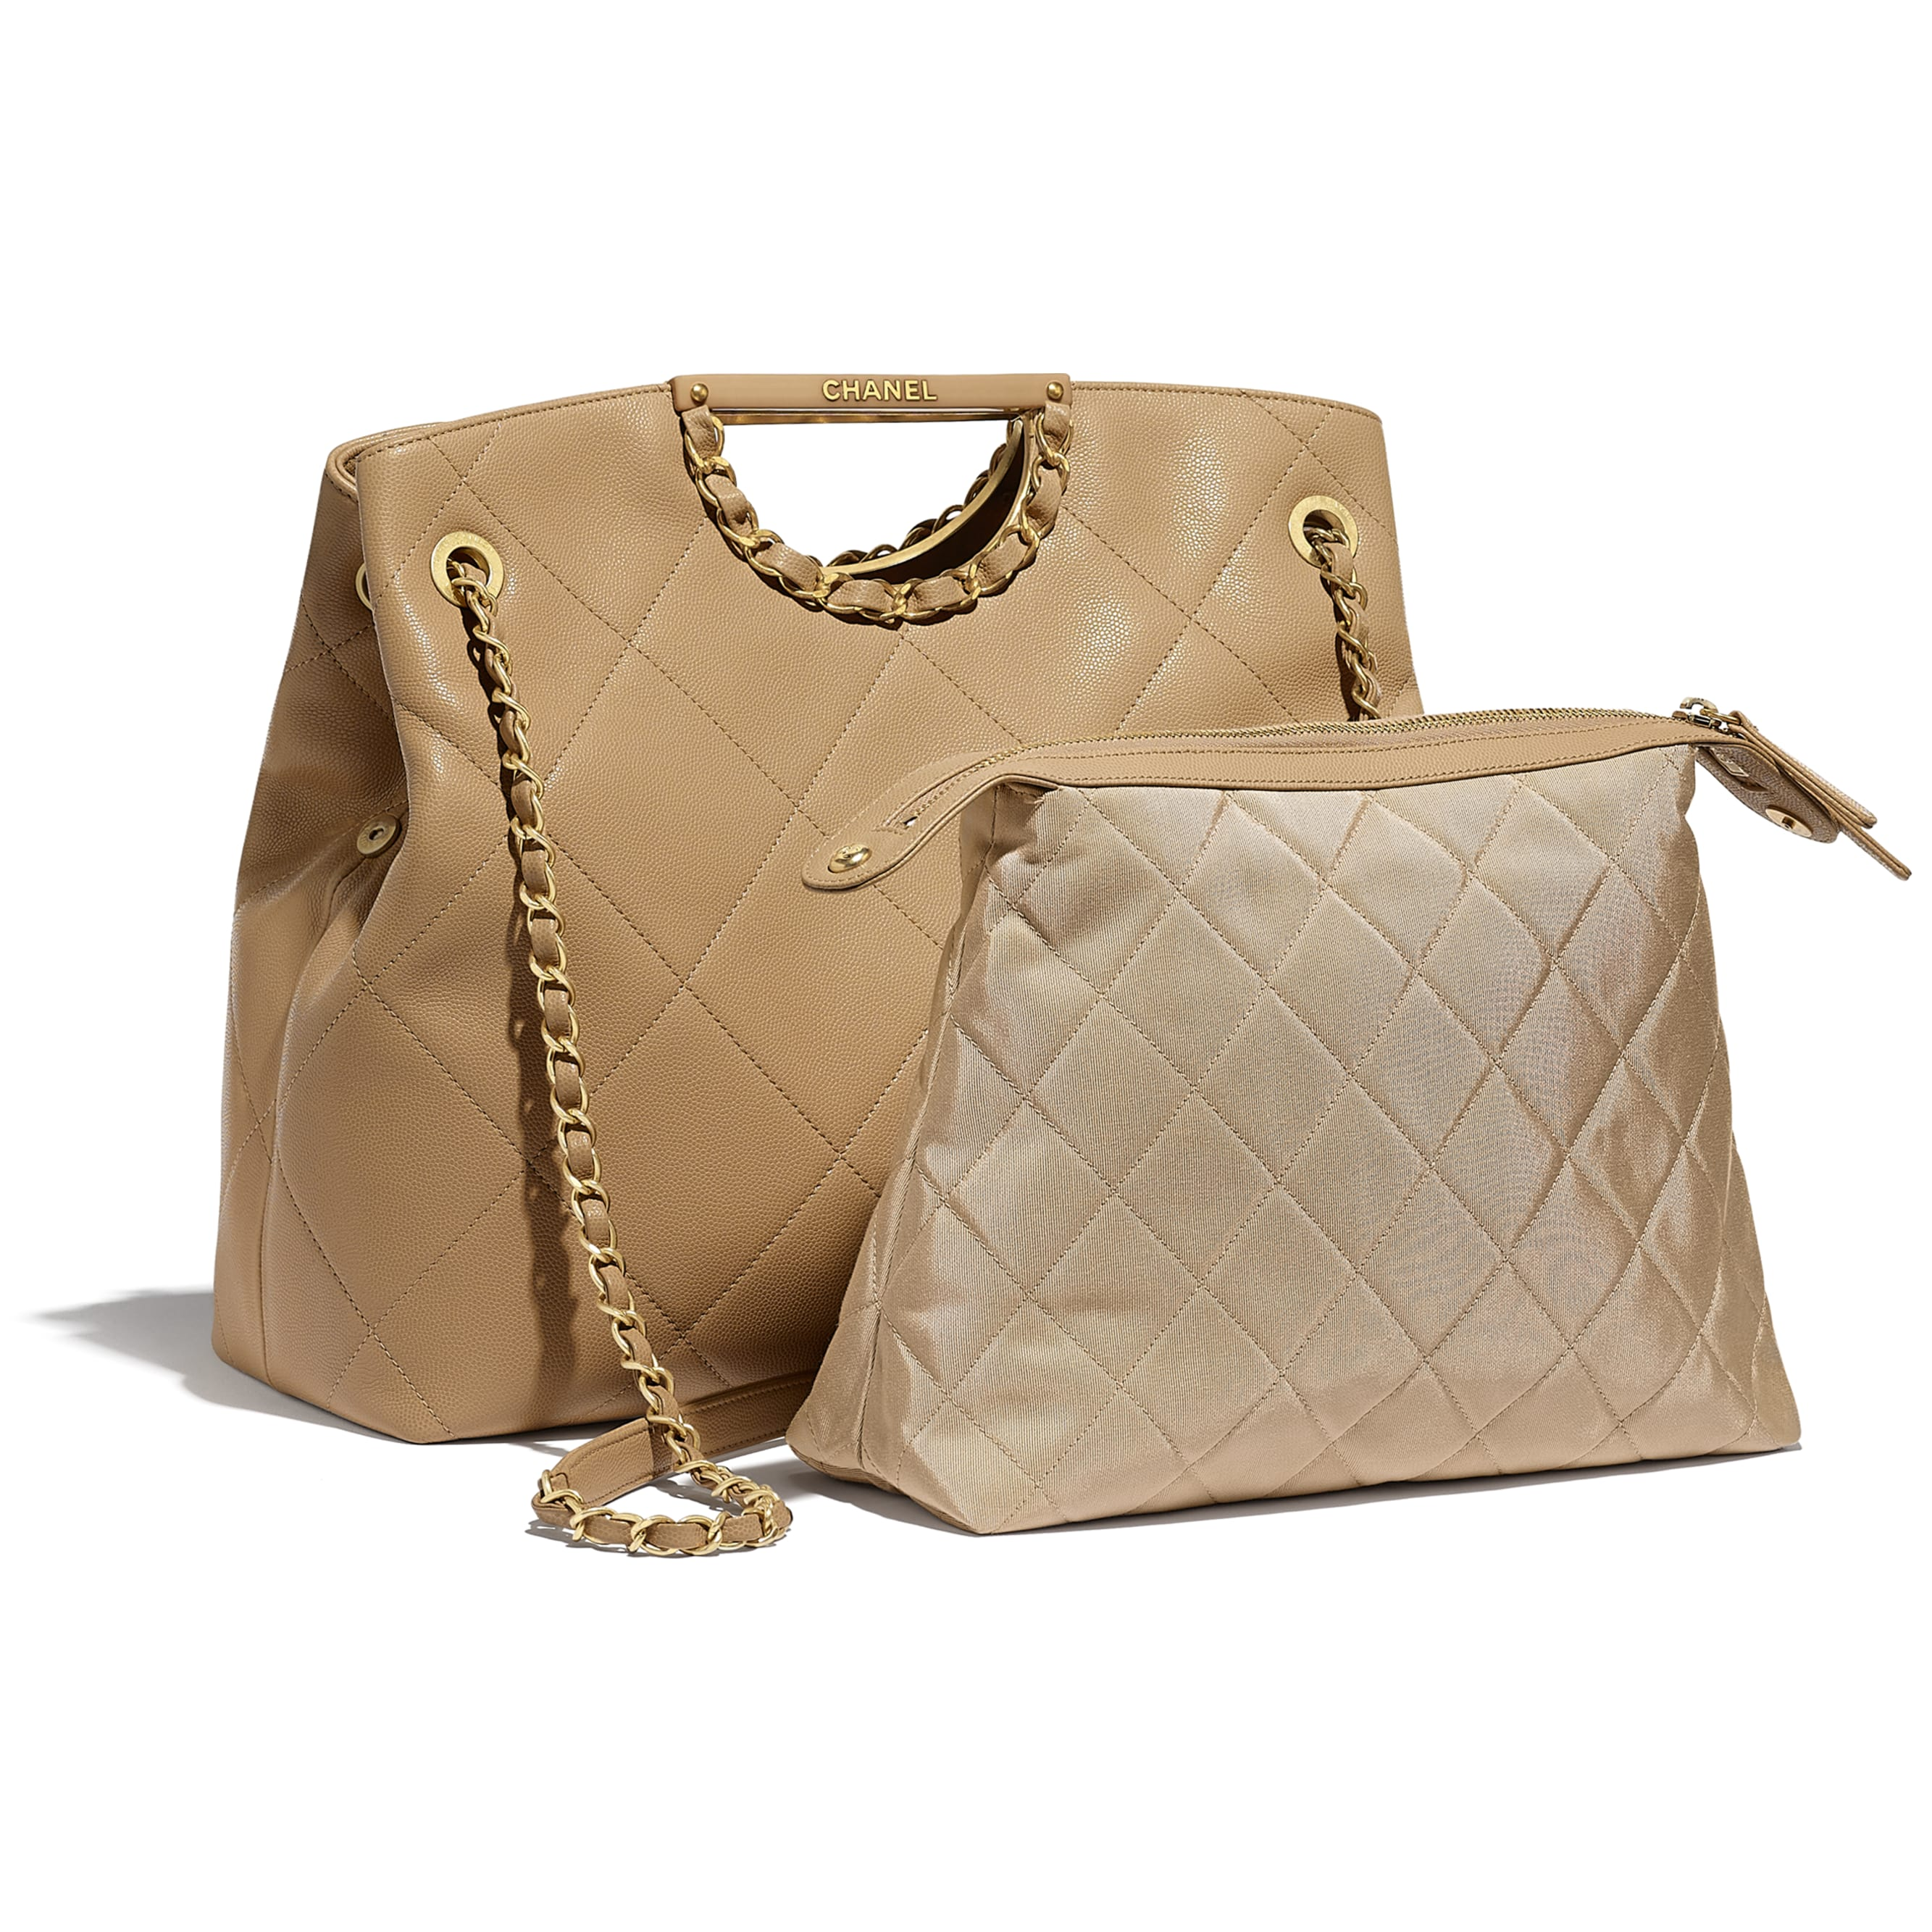 Large Tote - Beige - Grained Calfskin & Gold-Tone Metal - CHANEL - Extra view - see standard sized version